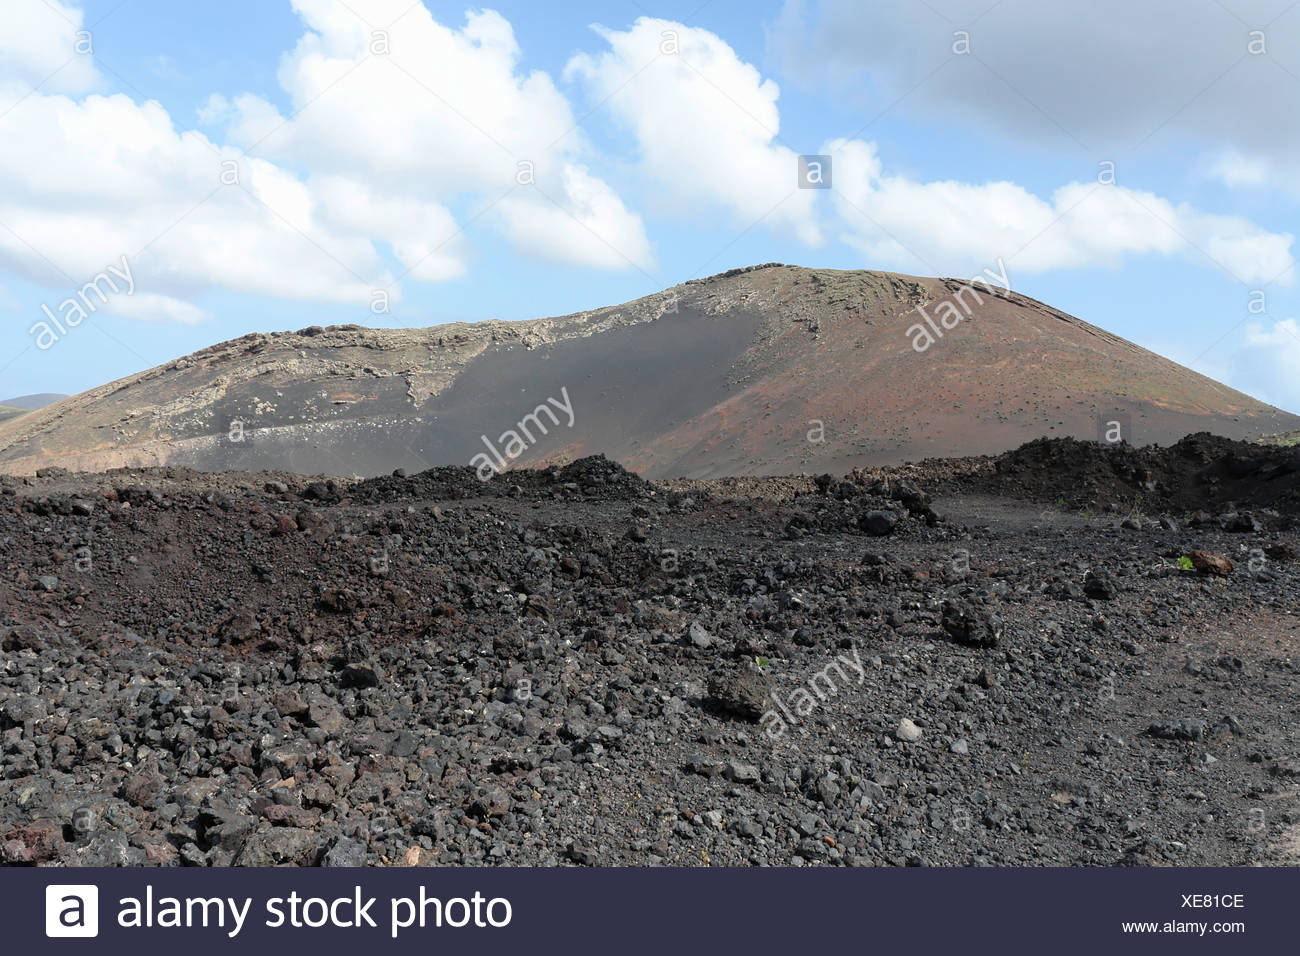 Spain, Lanzarote, Montana Colorada, lava bombs, lava field, mountains, scenery, rock, cliff, spectacle of nature, place of inter - Stock Image